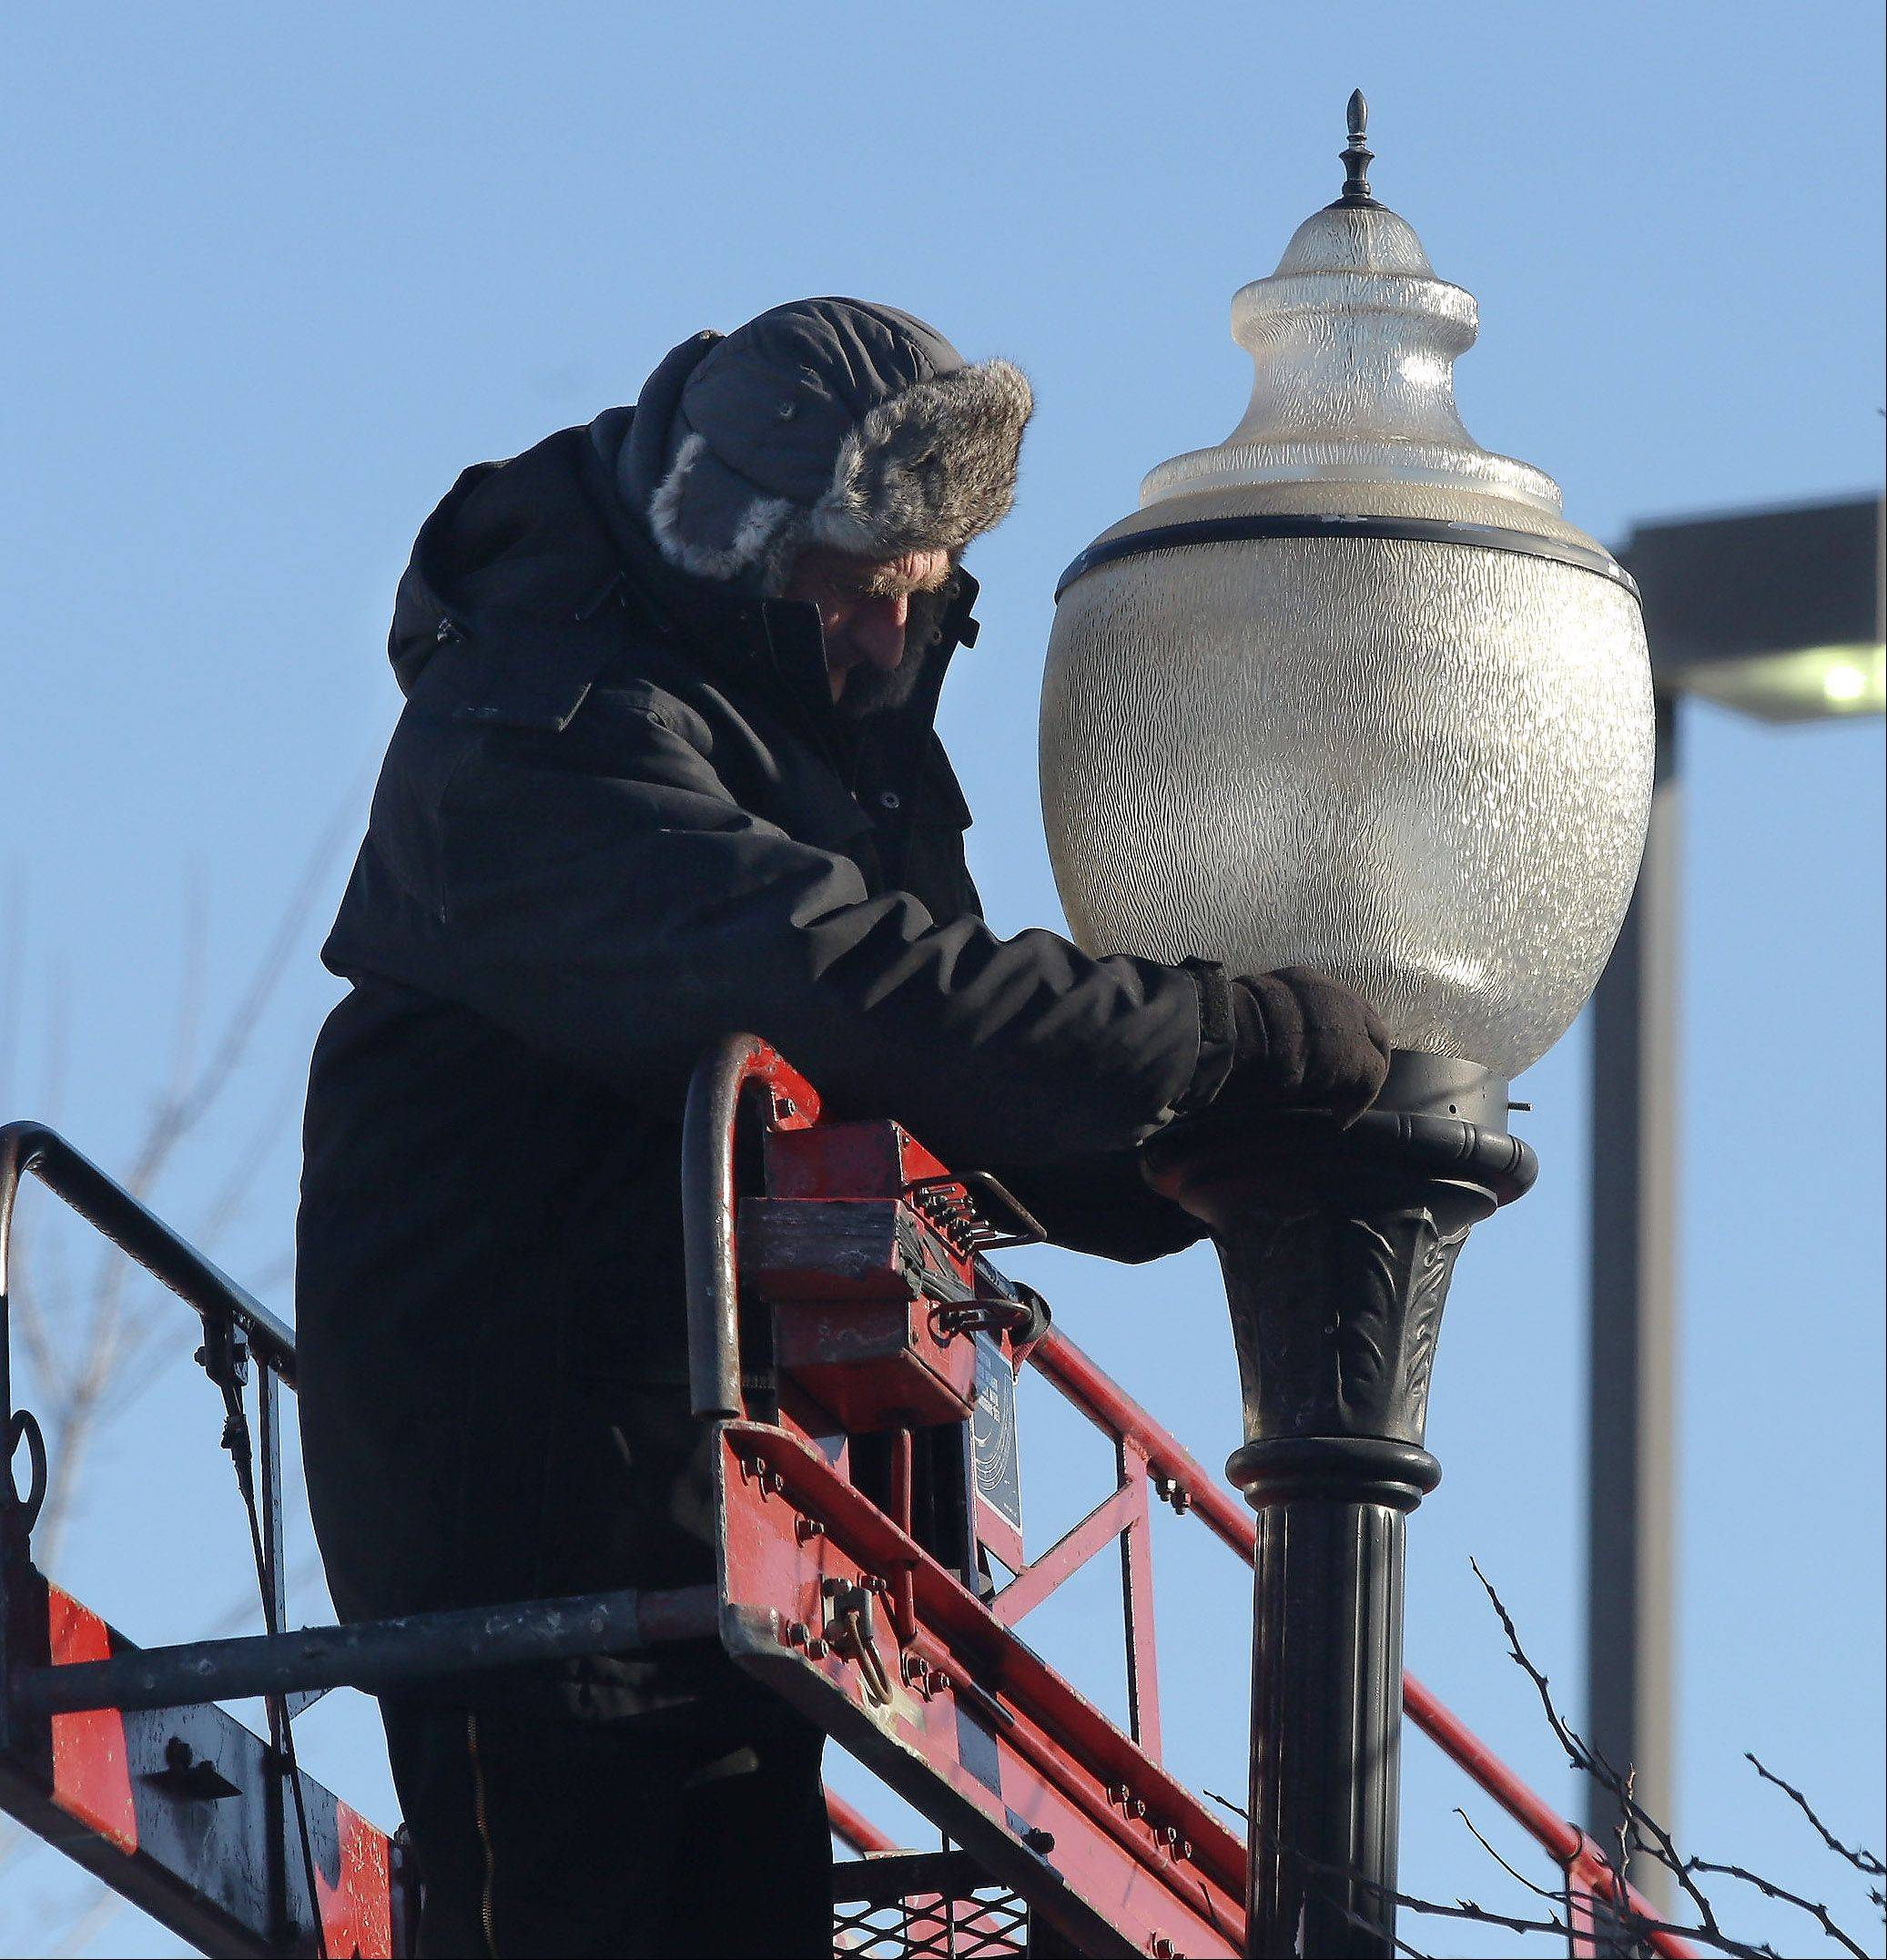 Lighting technician Adam Biernat of Imperial Lighting Maintenance Co. is bundled up as he changes a light bulb in a parking lot in Vernon Hills during subzero temperatures Tuesday.